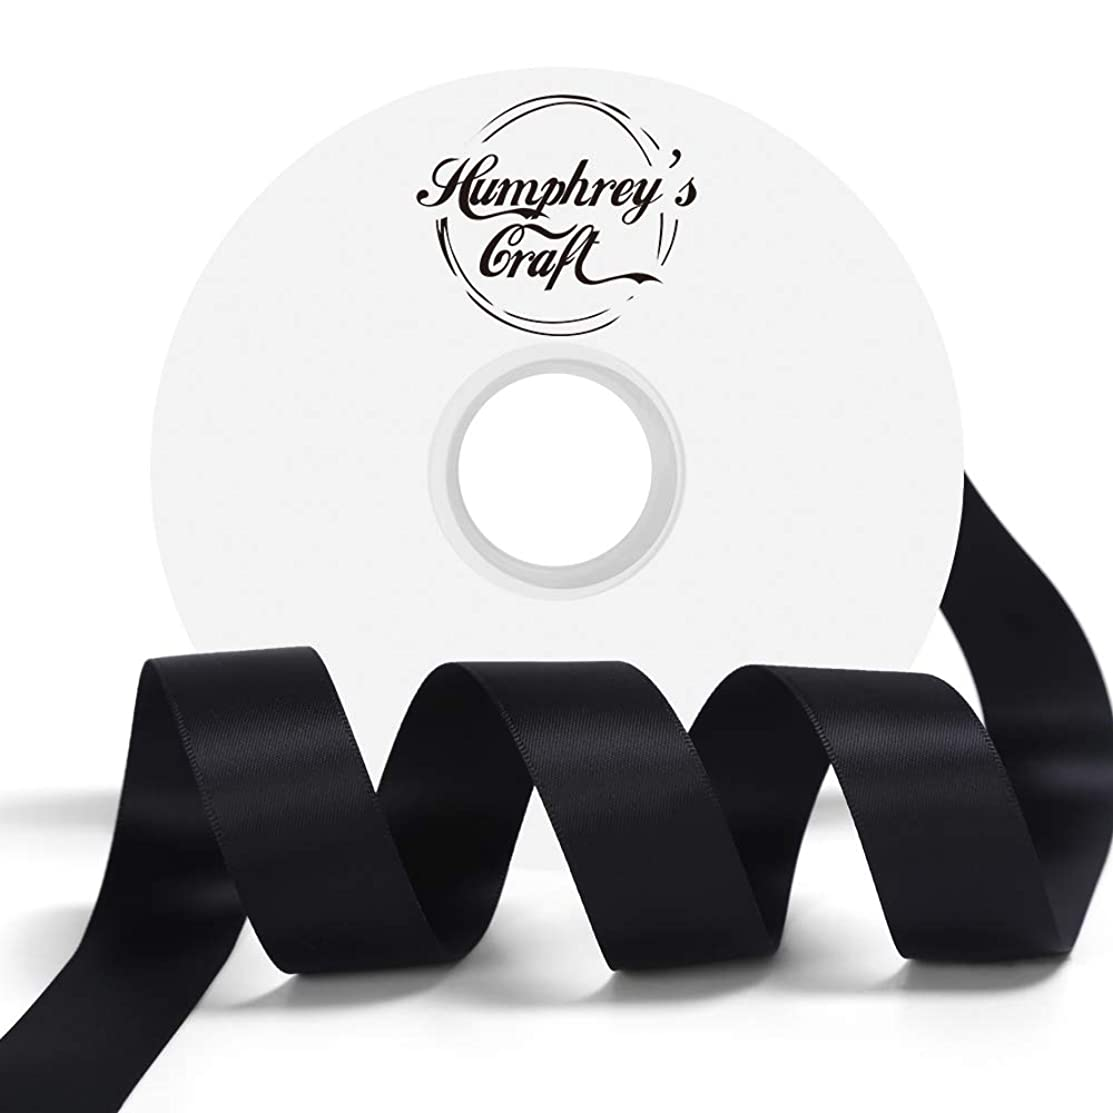 Humphrey's Craft 1-inch Double Face Solid Satin Ribbon 100% Polyester Ribbon Roll-50 Yard (Black)